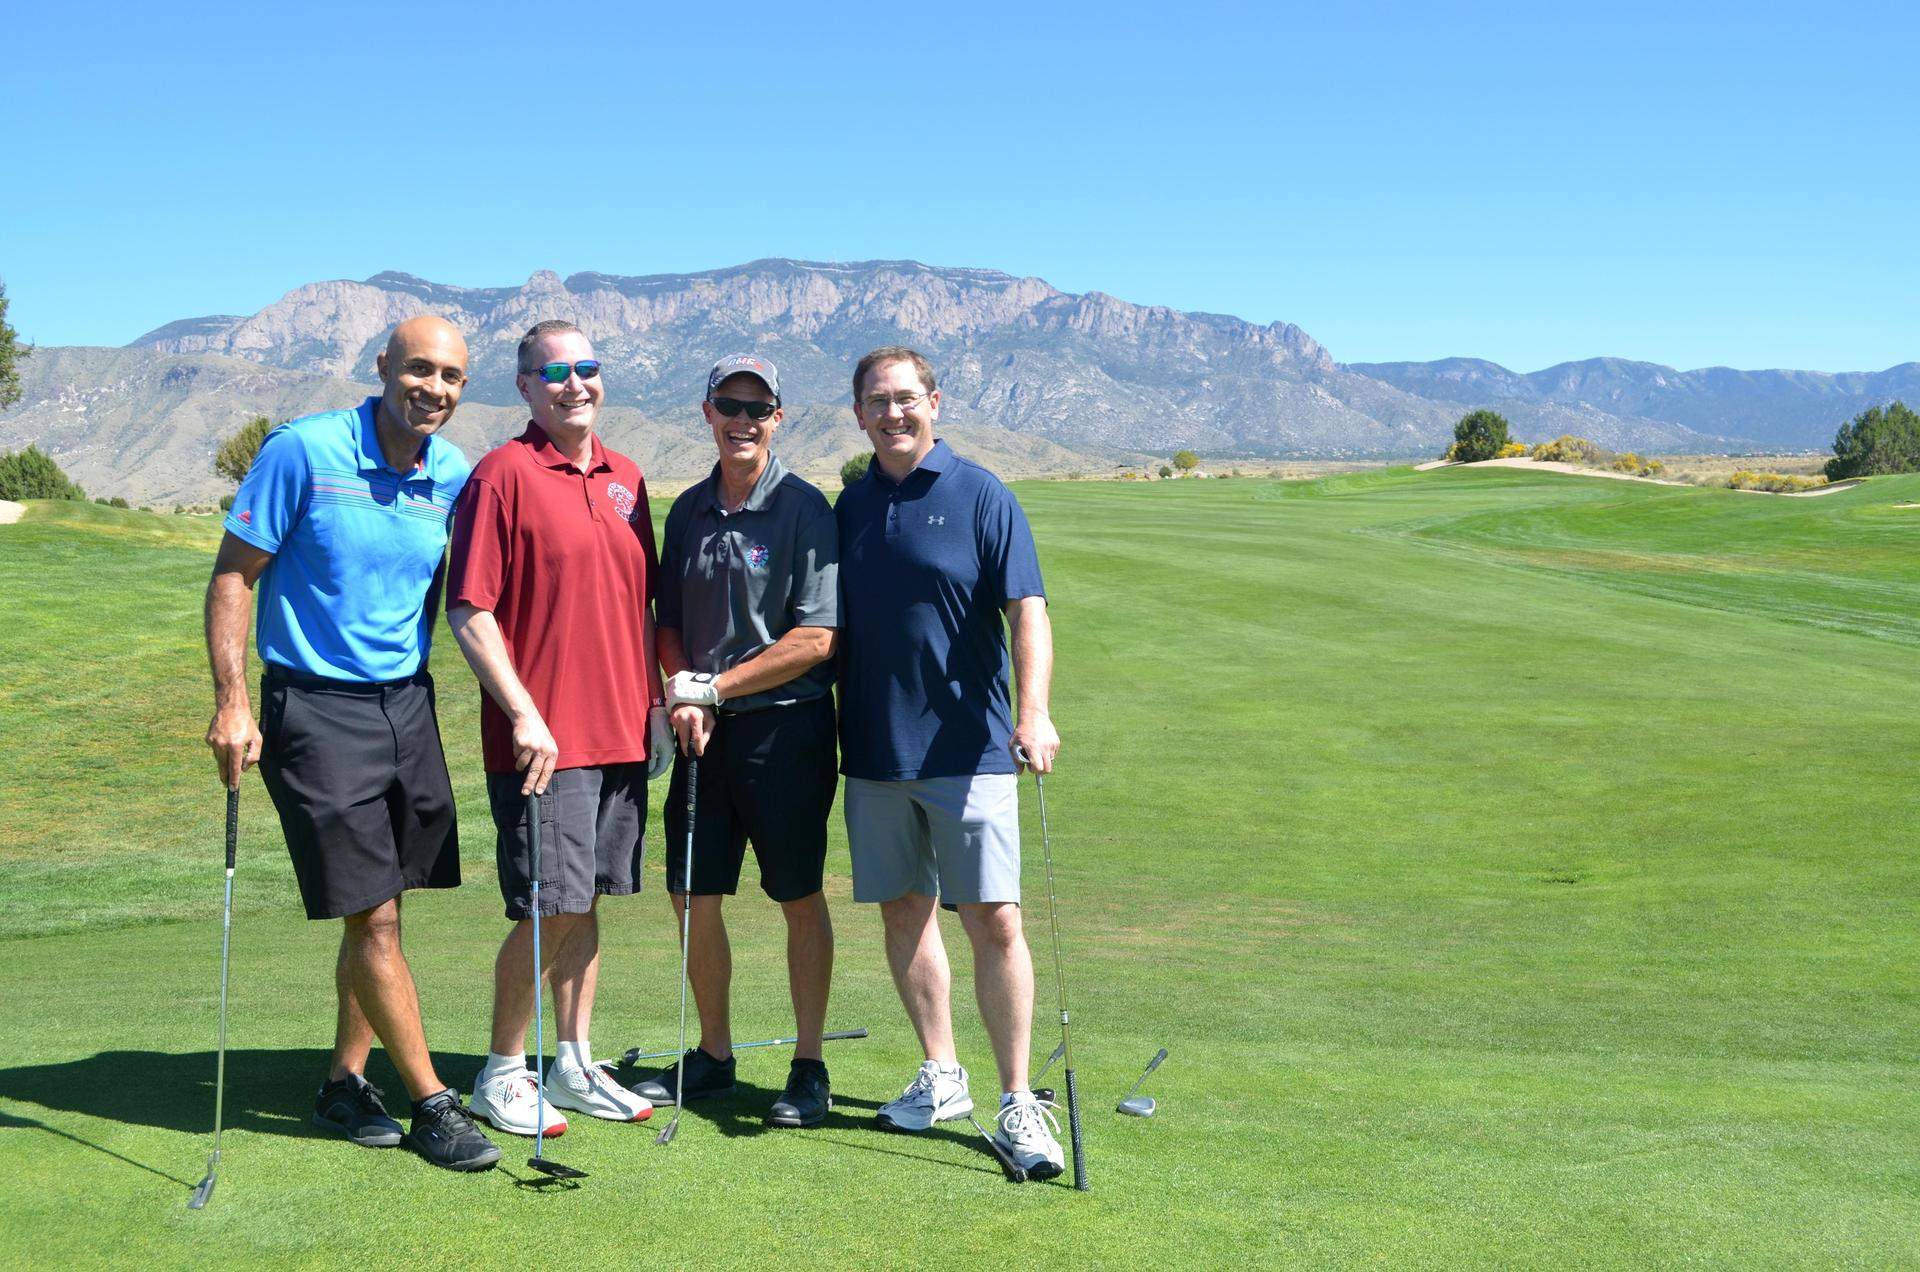 Golfers smile in front of the Sandia Mountains